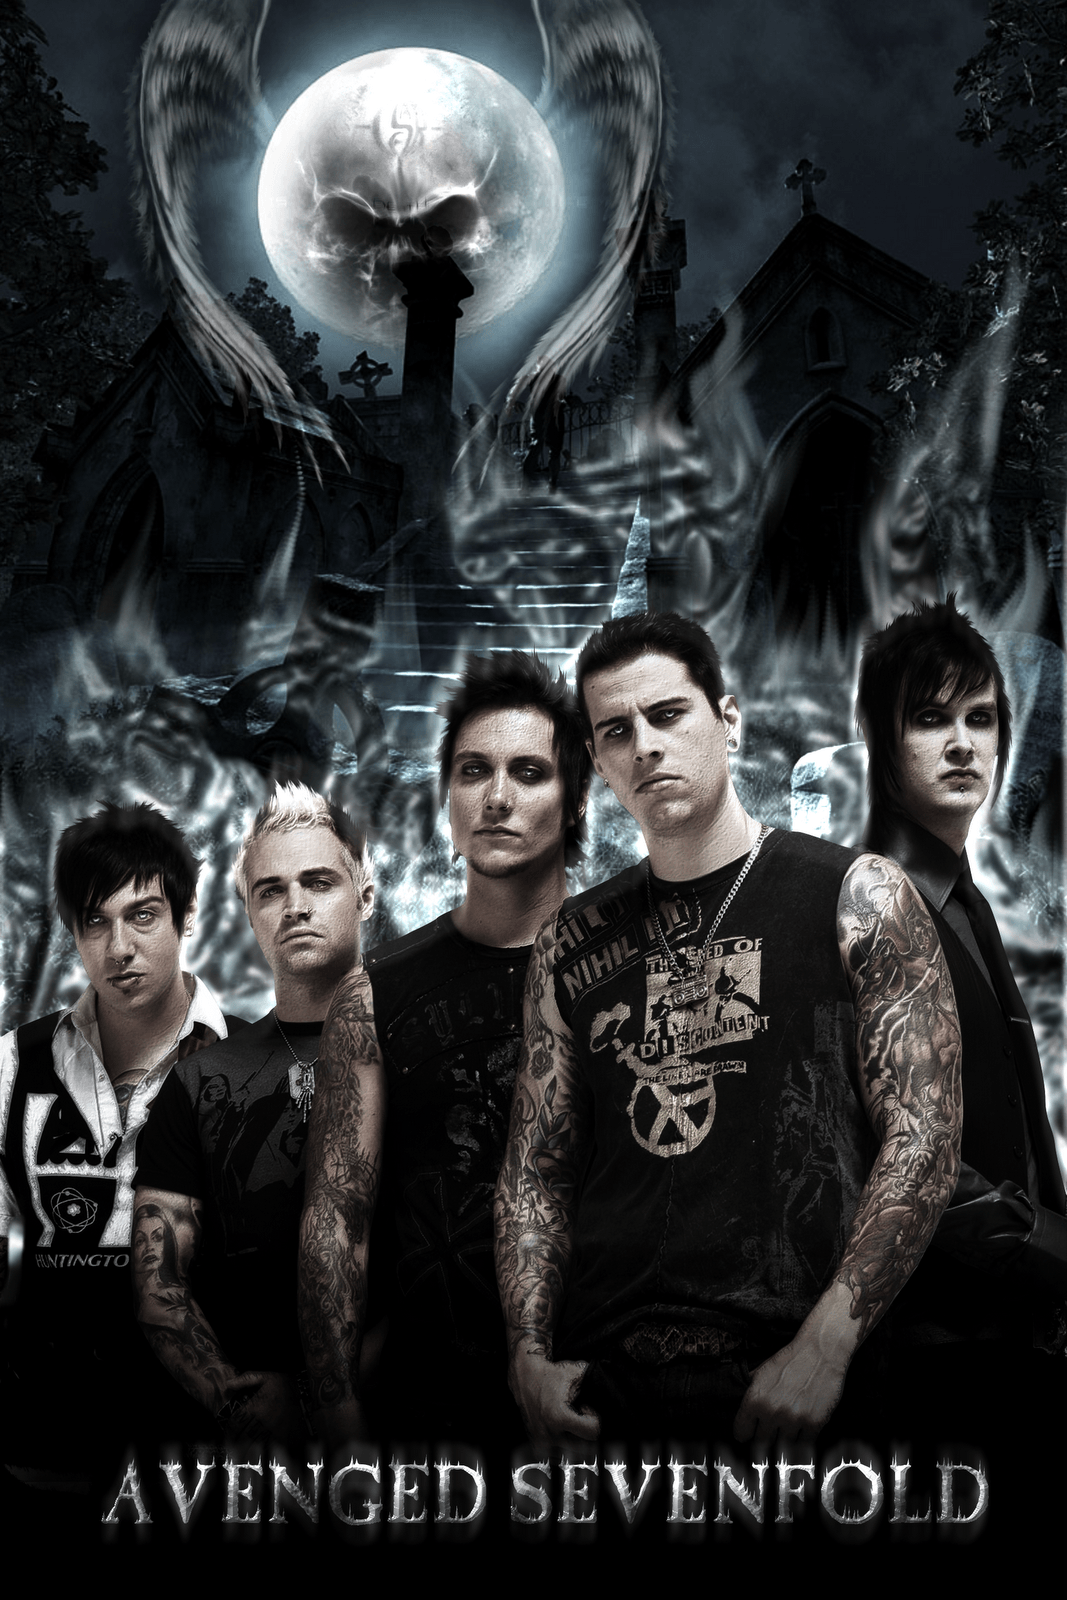 Avenged Sevenfold 2017 Wallpapers - Wallpaper Cave